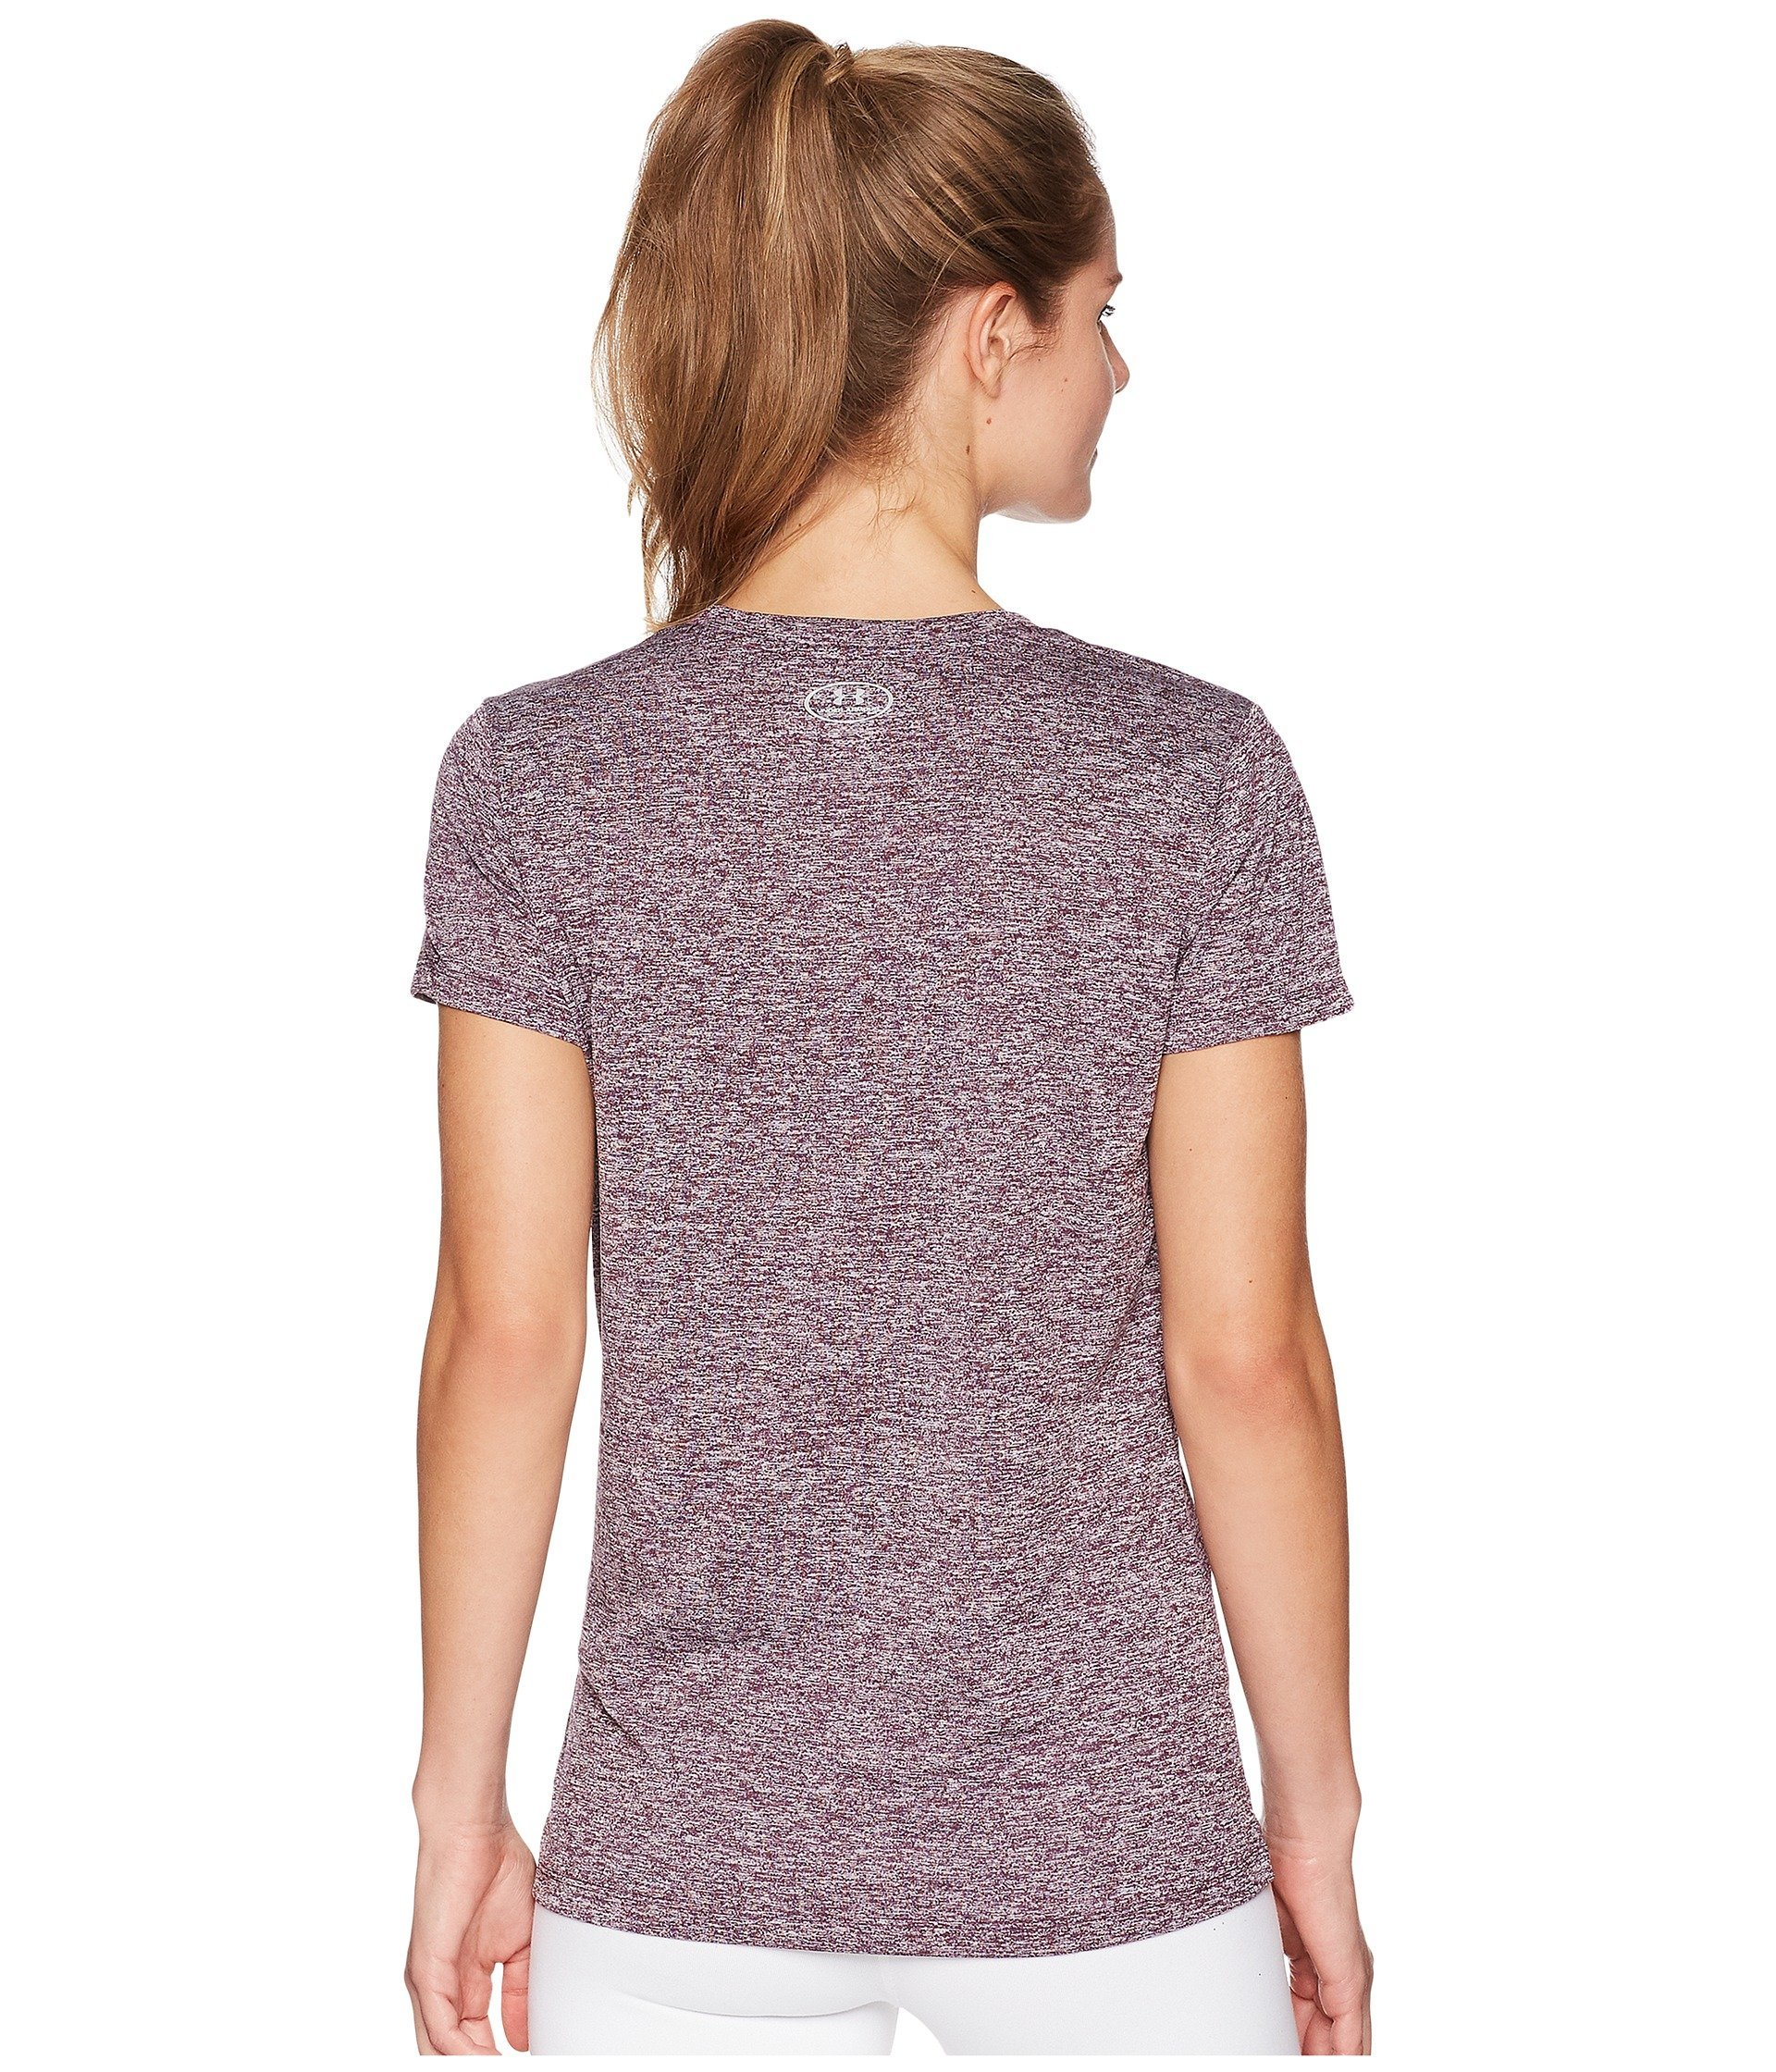 Under Armour Women's UA Tech¿ Twist V-Neck Merlot/Metallic Silver X-Small by Under Armour (Image #2)